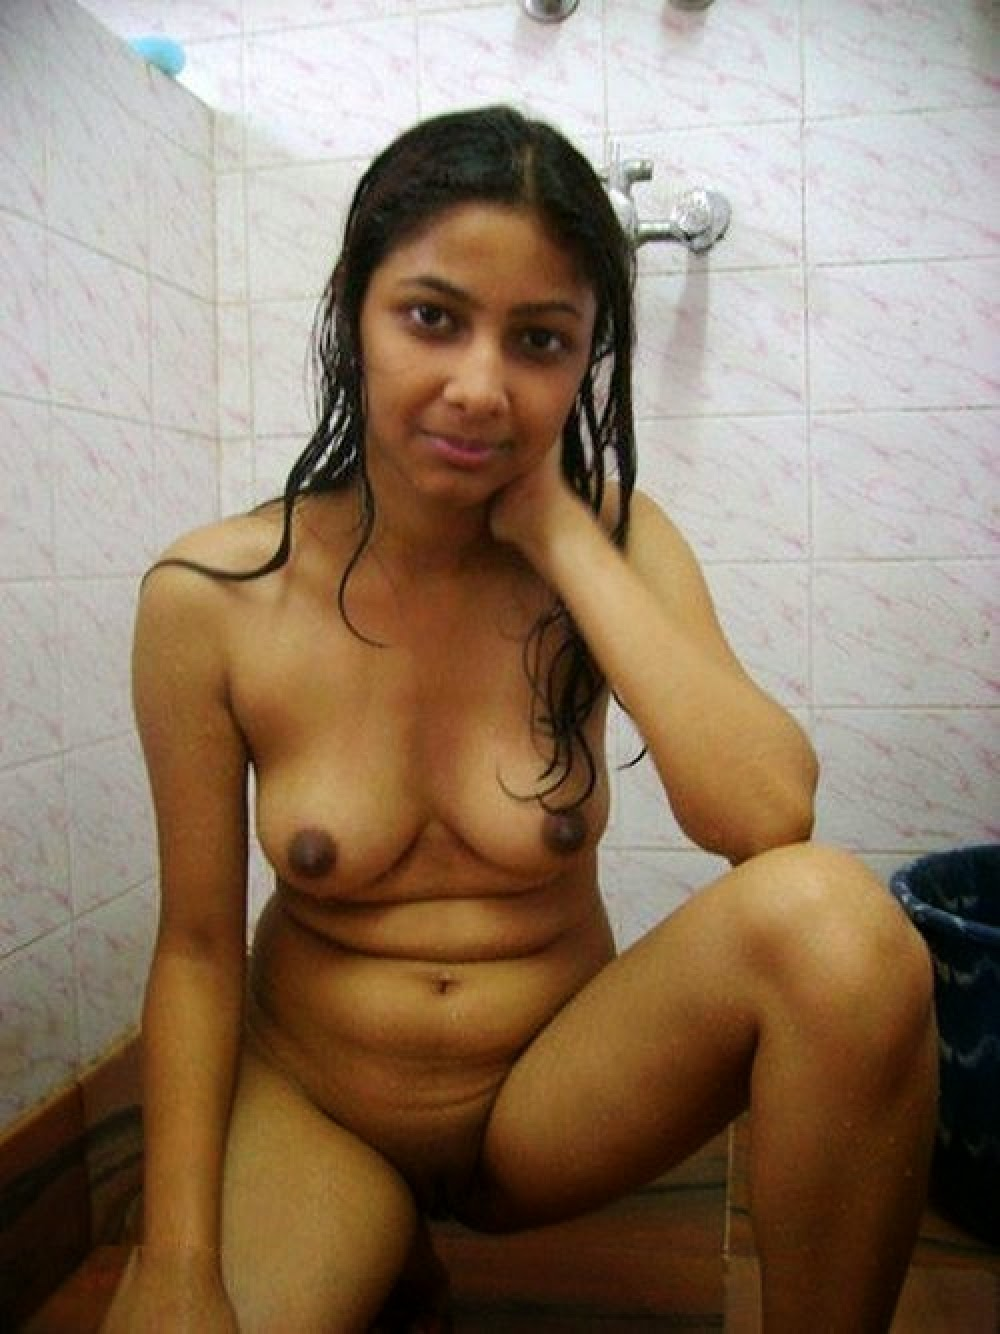 lankan girla nude photo